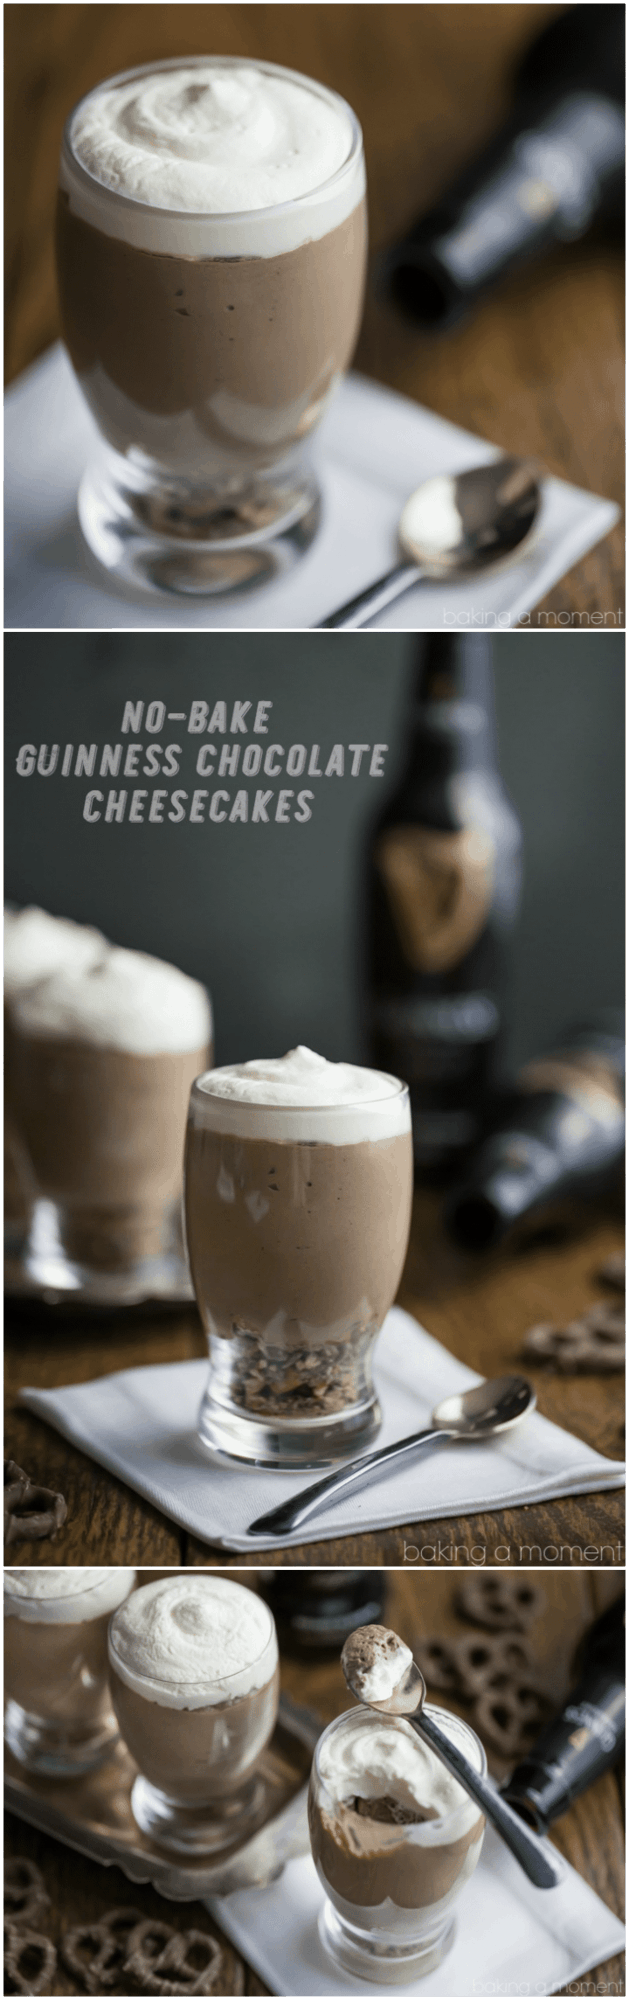 Easy St. Patrick's Day dessert recipe: no-bake chocolate cheesecakes with Guinness, on a crunchy pretzel crust! So fluffy and the flavors are amazing together!